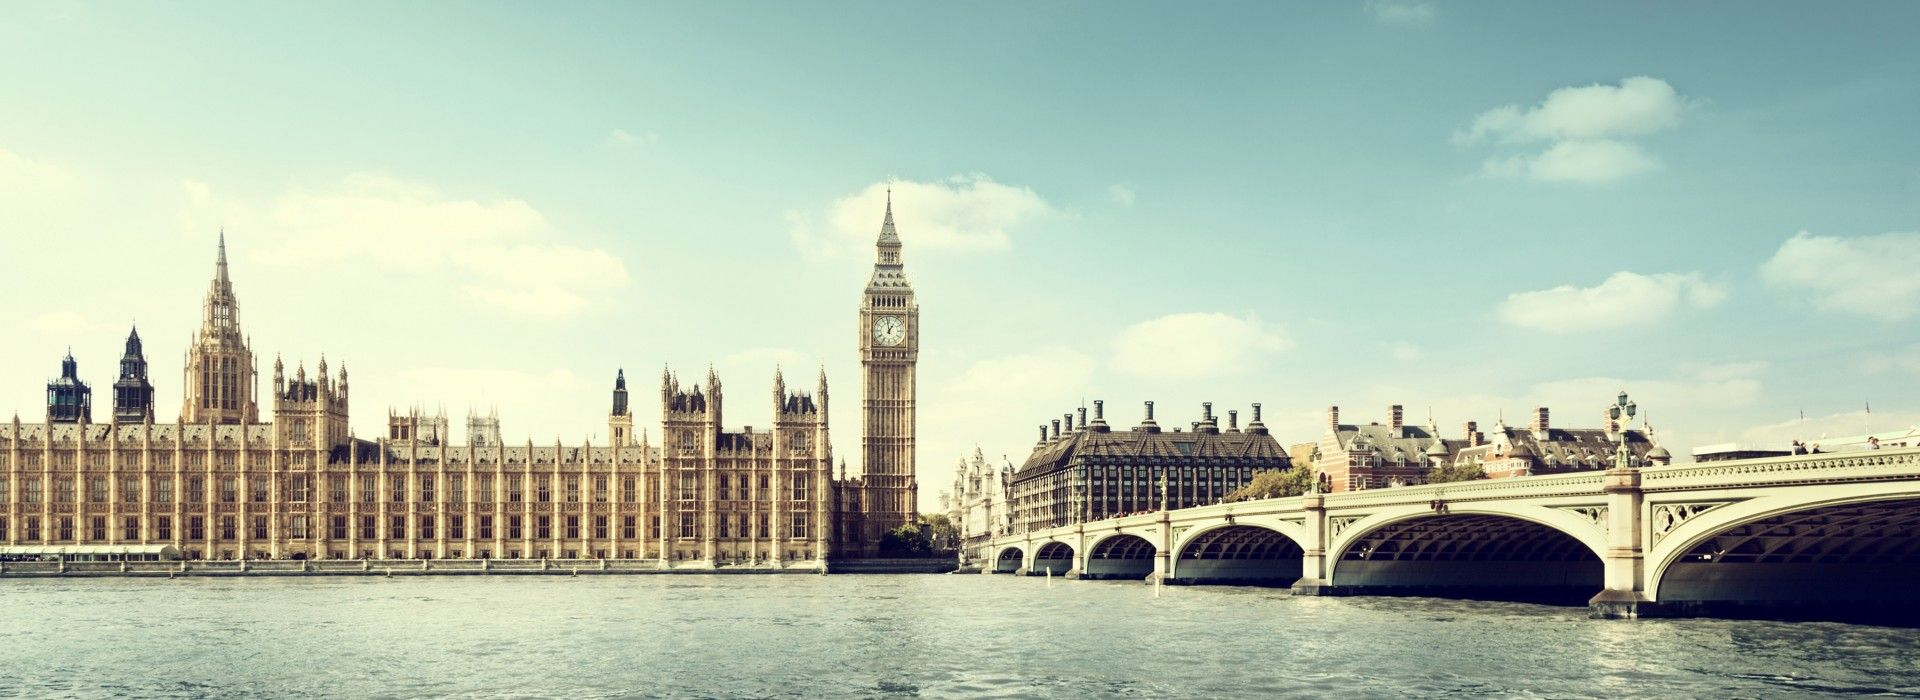 Special interests and hobbies Tours in UK